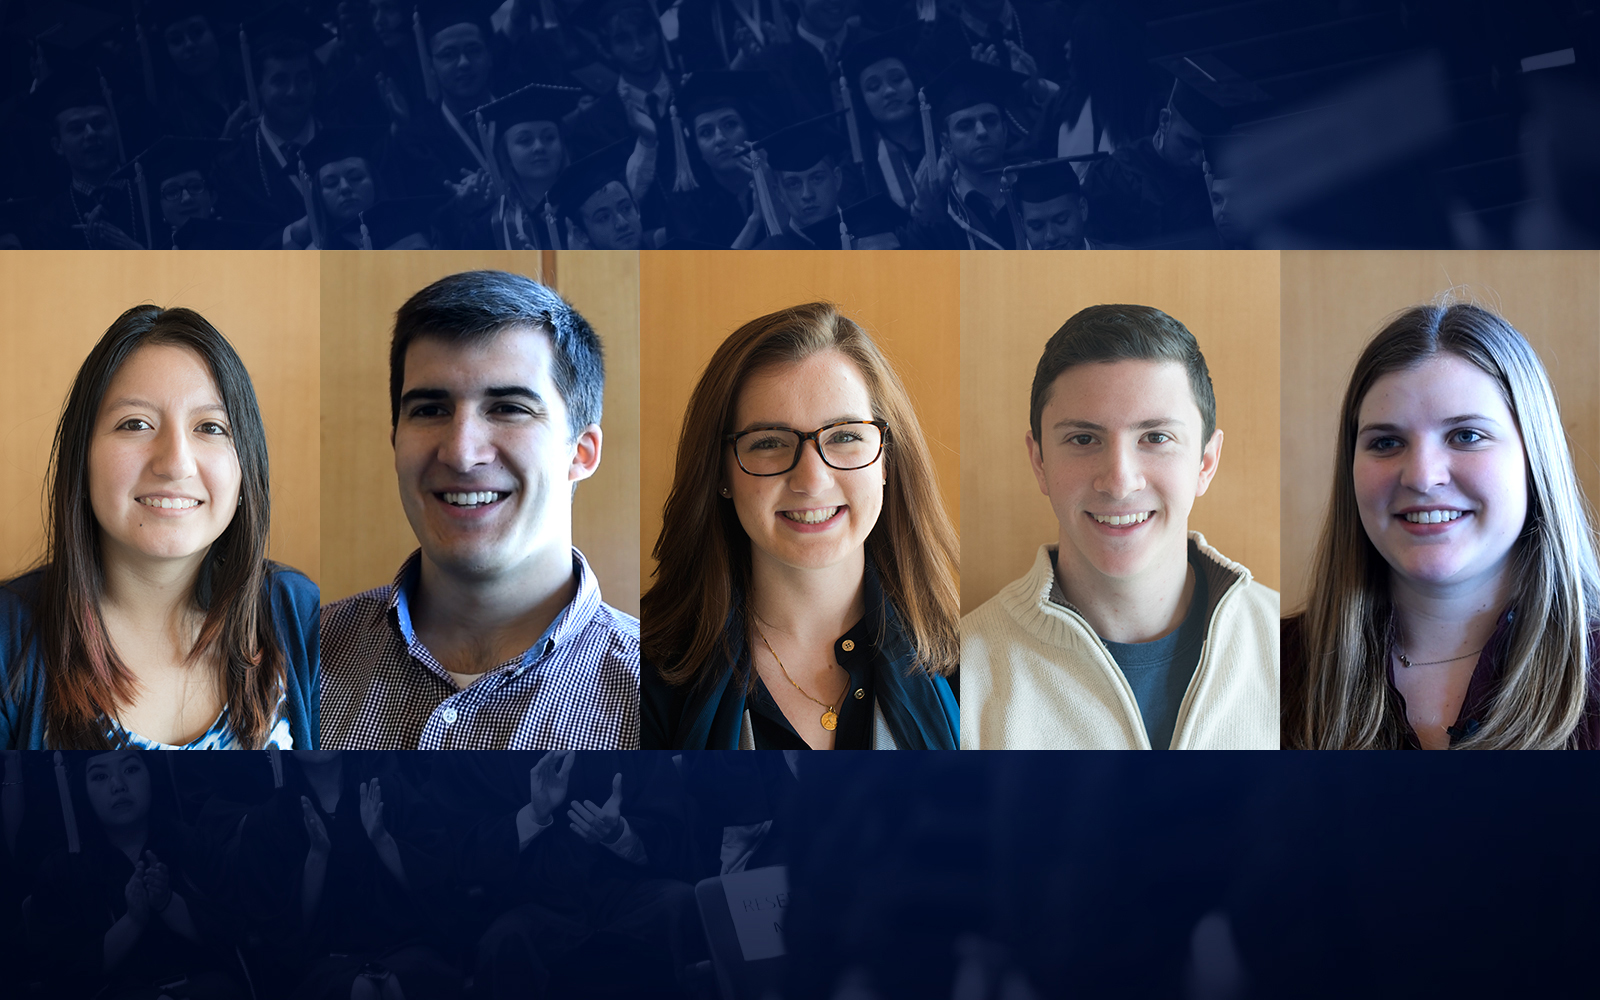 From left: Karla Lazo, Luke LaBranche, Gianna Bodnar, Marc Senatore, and Sarah Lang, Class of 2017 (Nicolle Anderson/UConn School of Business)